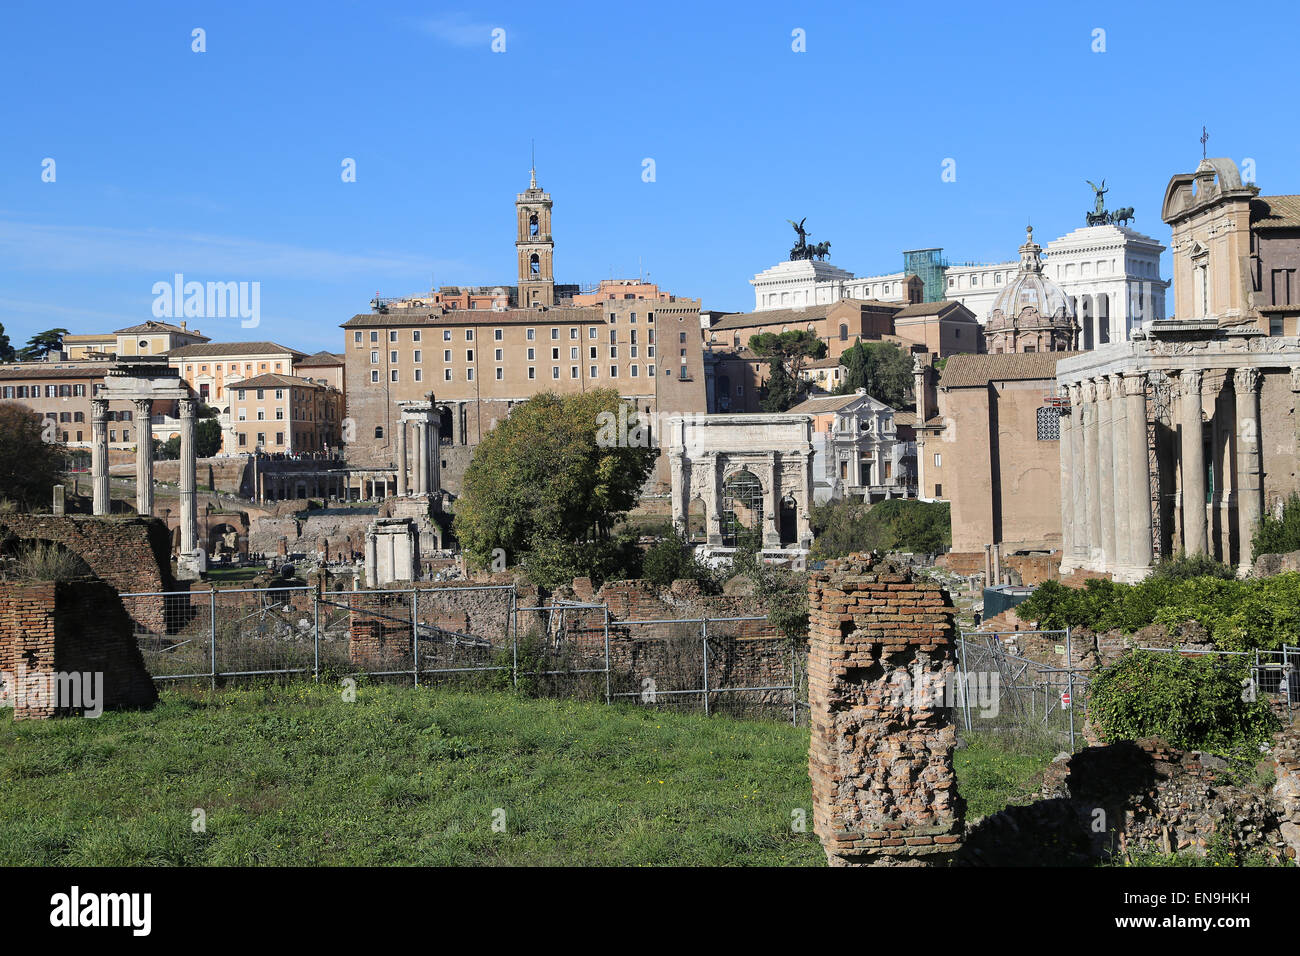 Italy. Rome. The Roman Forum. Panoramic. - Stock Image